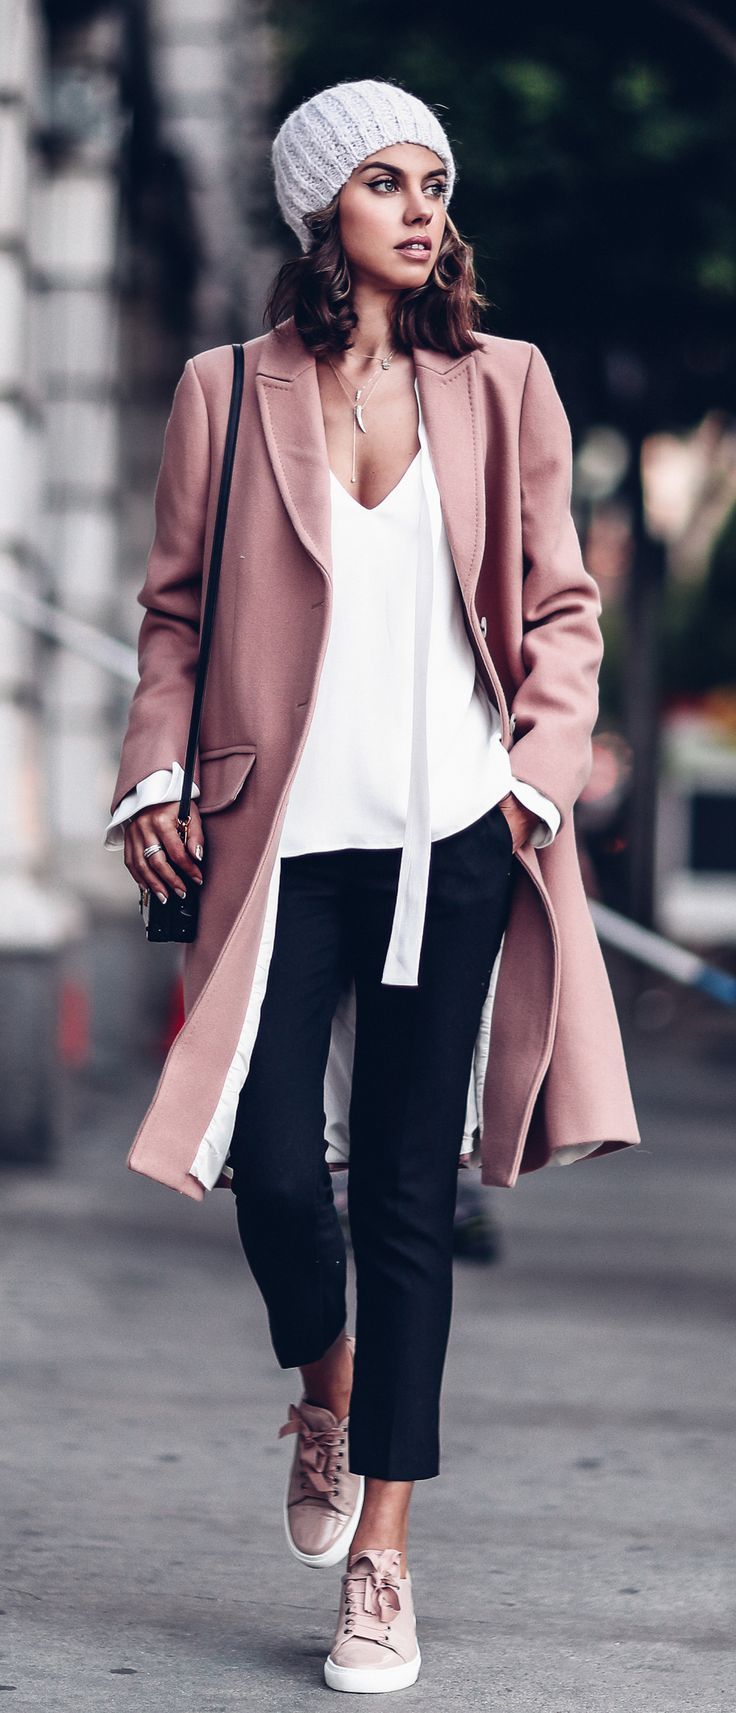 Pink Pastel Coat | Sandals & Shoes | Pinterest | Coats, Pastels ...